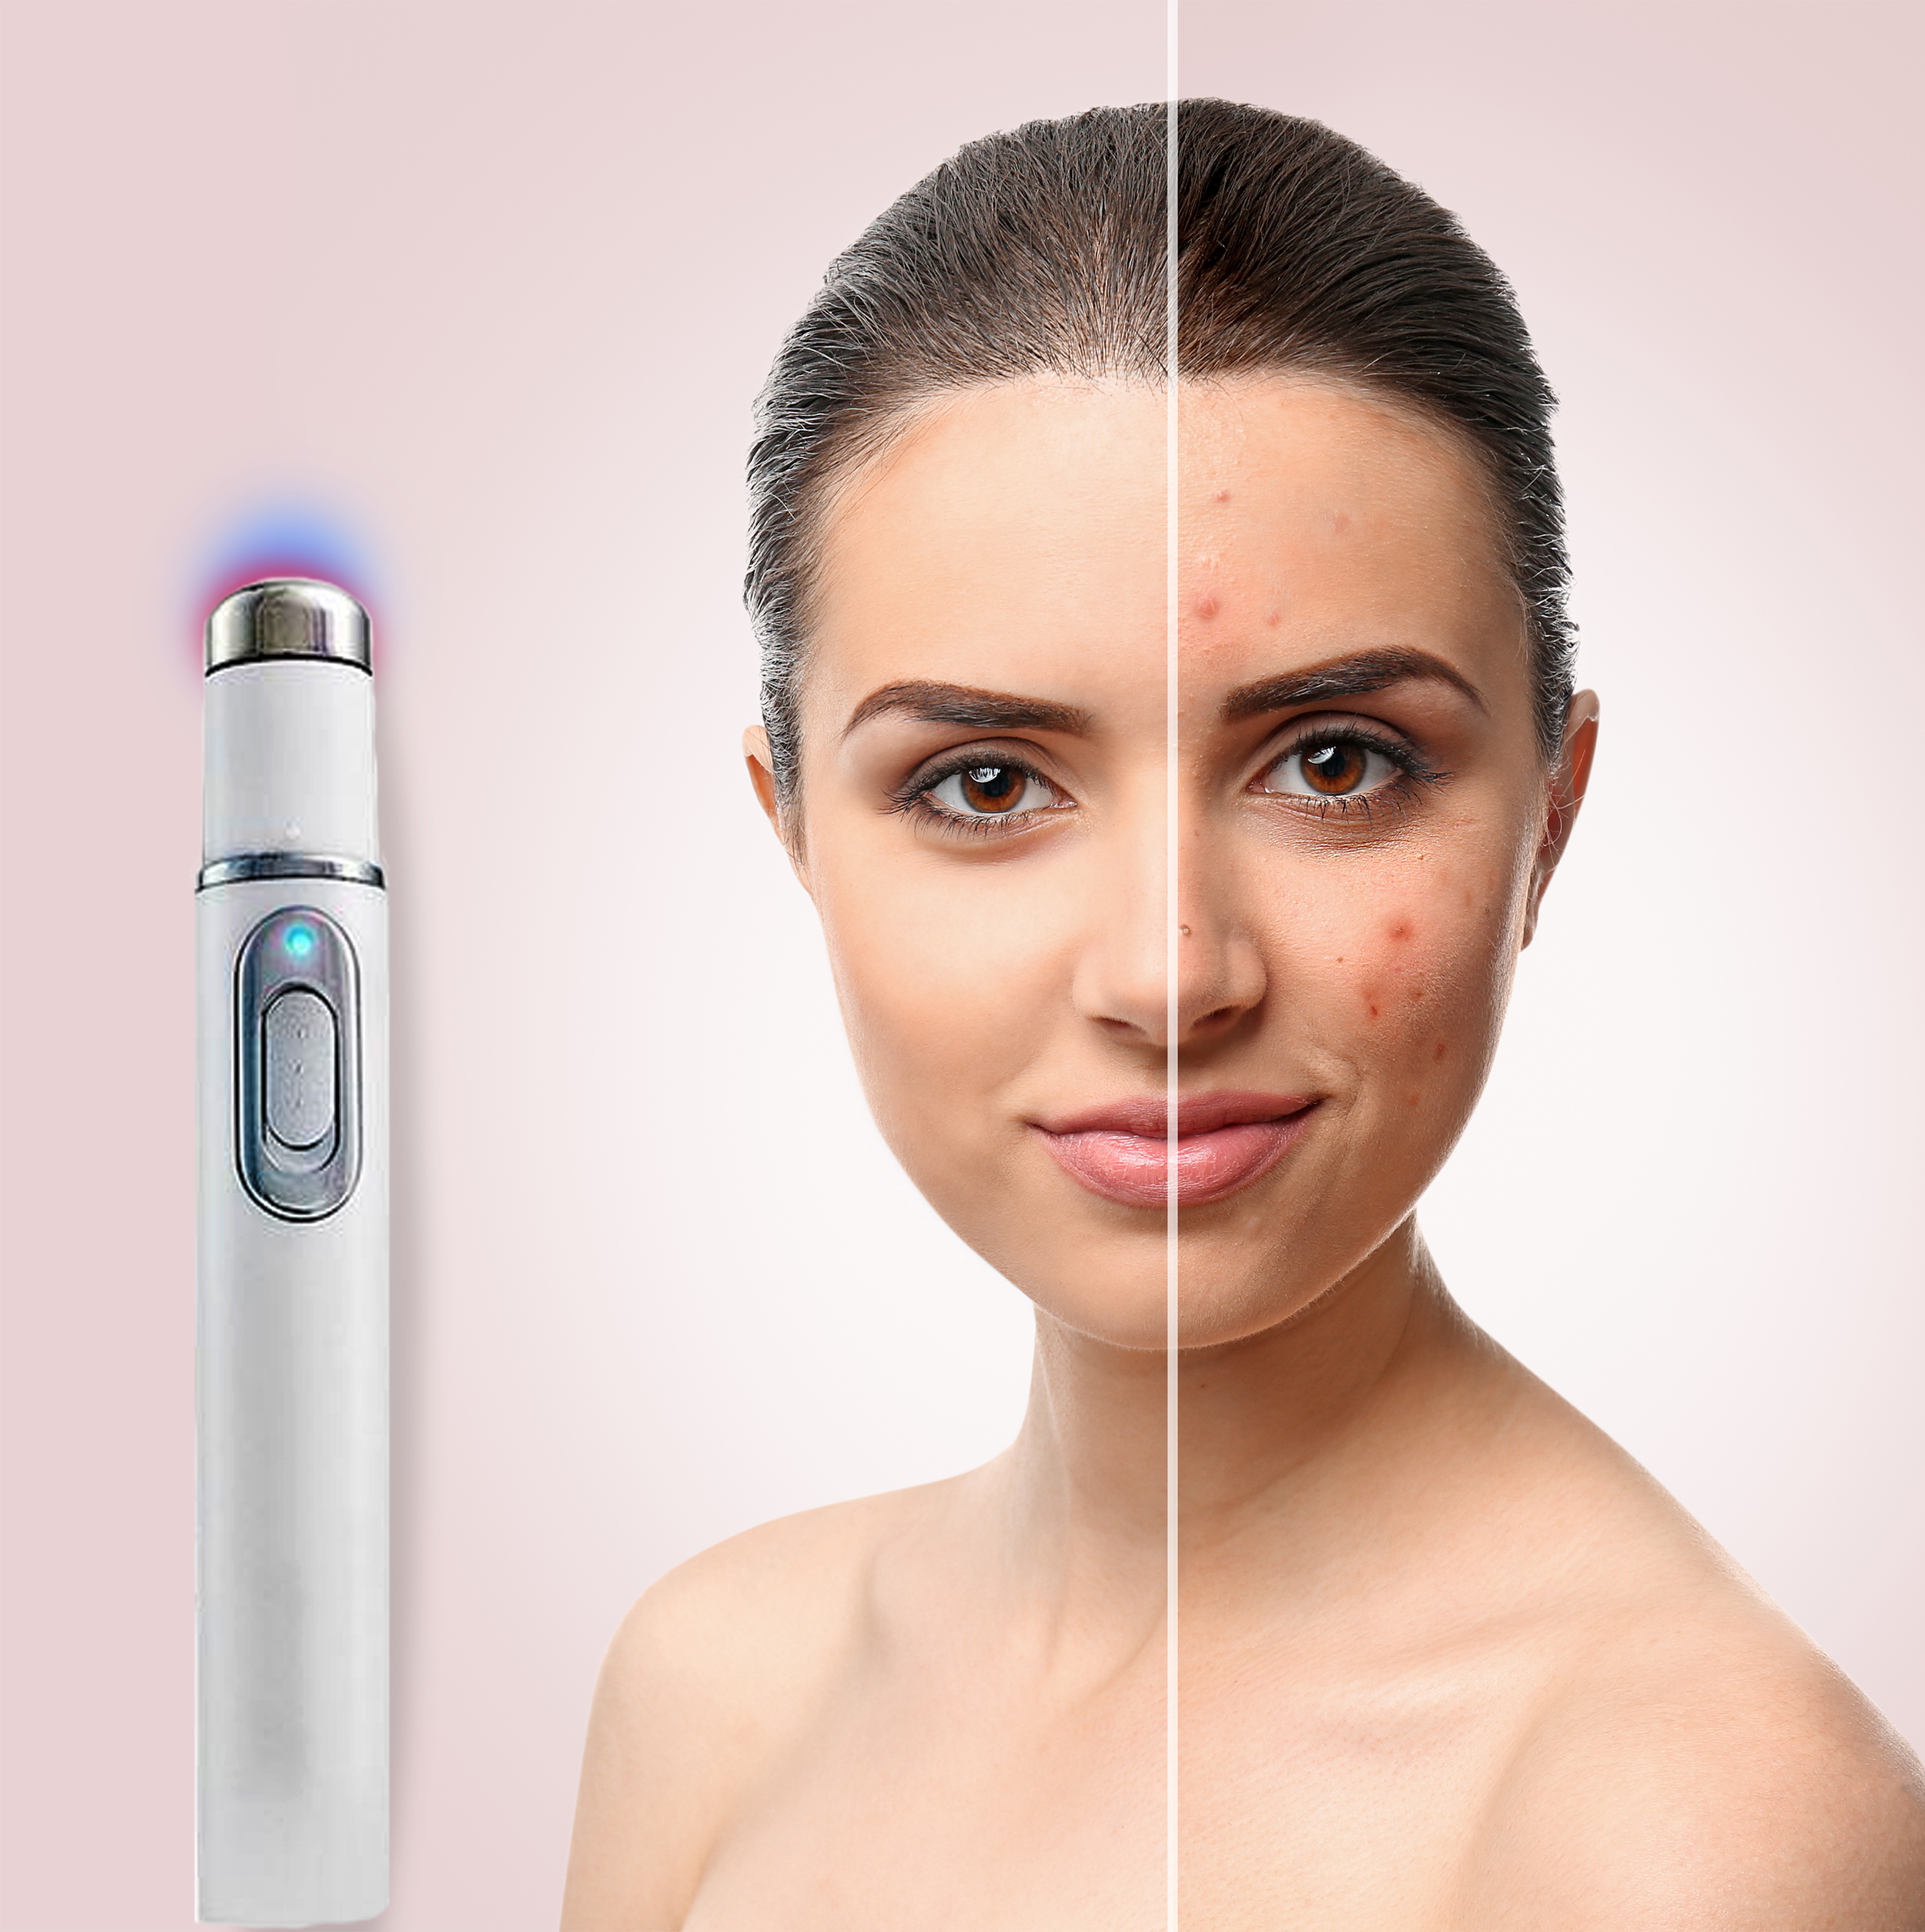 FREE SHIPPING - Skin Light Therapy Pen